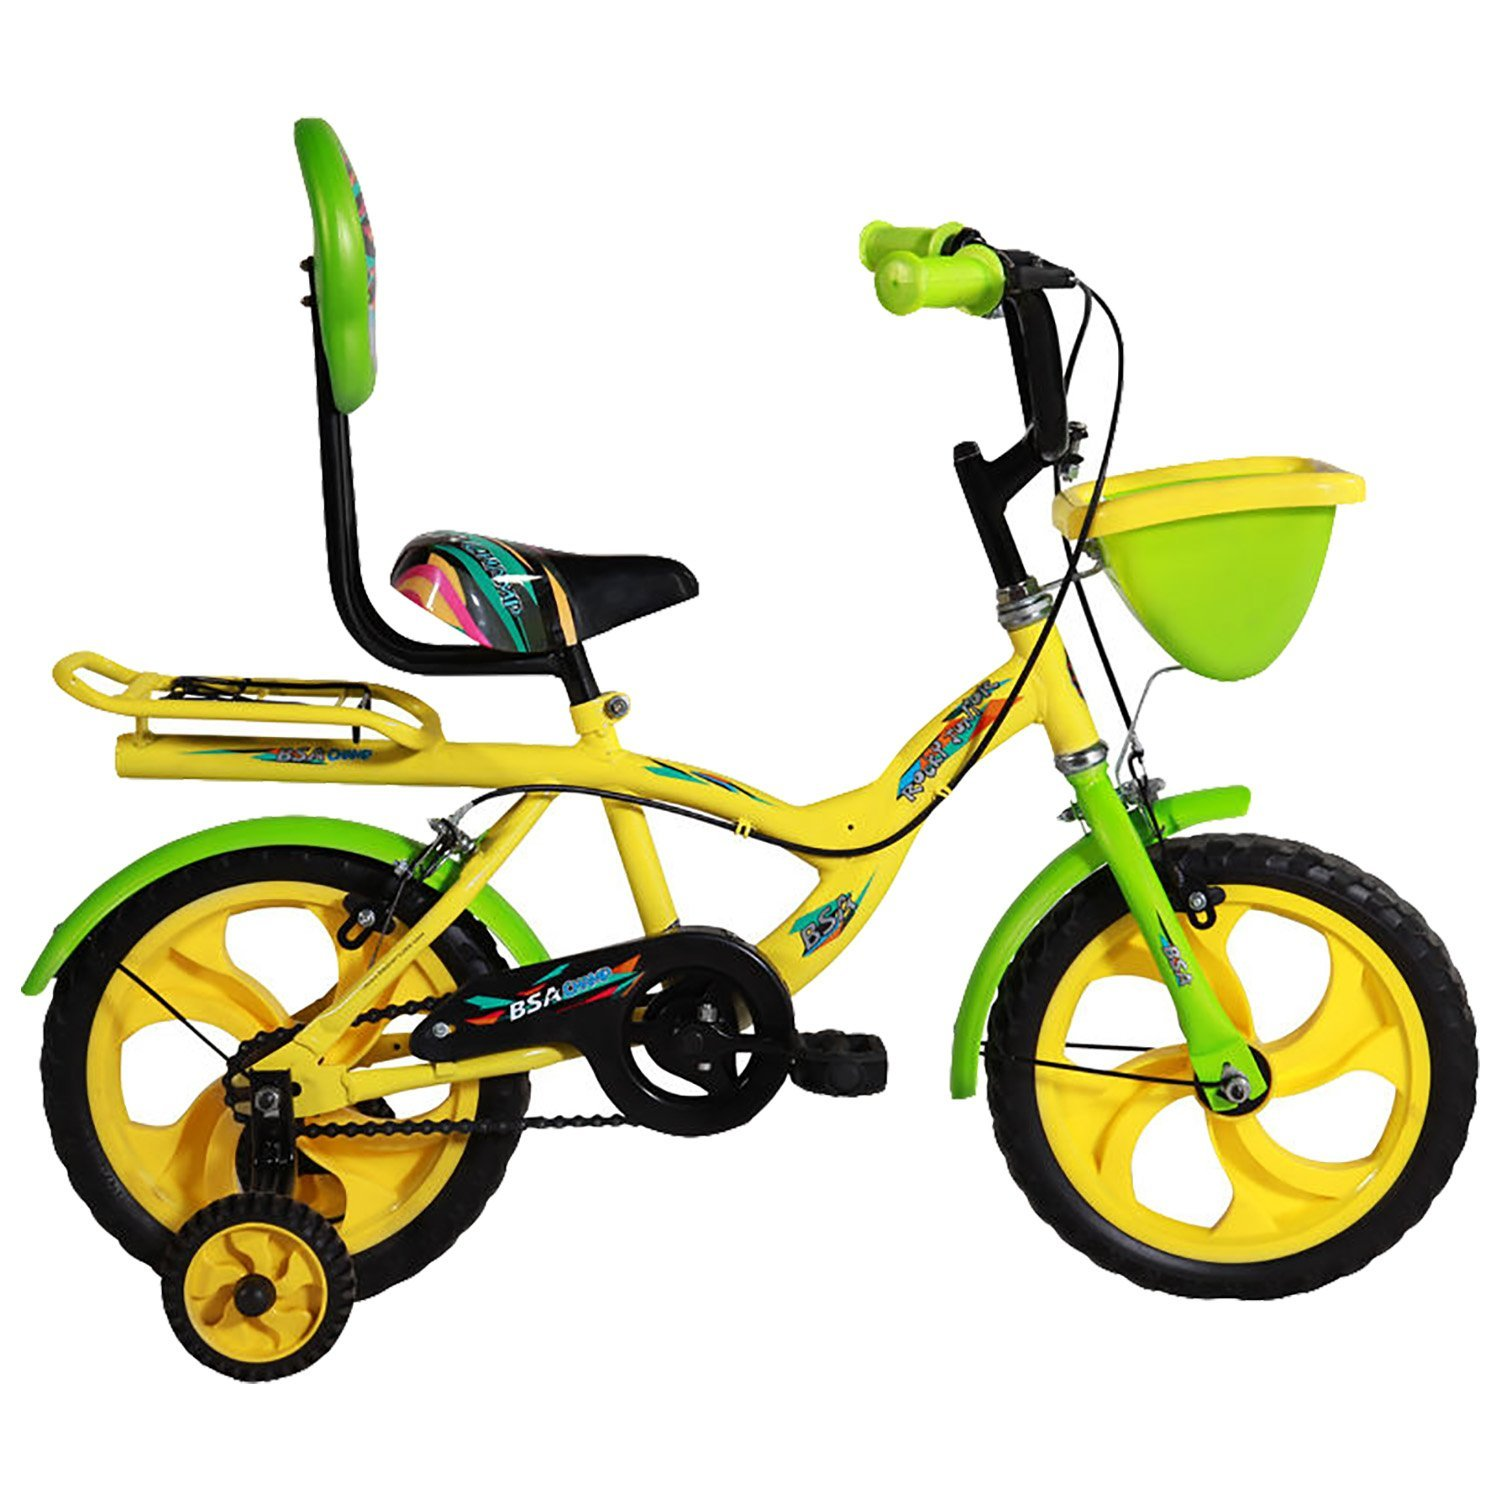 BSA Champ Rock Junior Bicycle, Yellow & Green - (14 Inch): Amazon.in ...